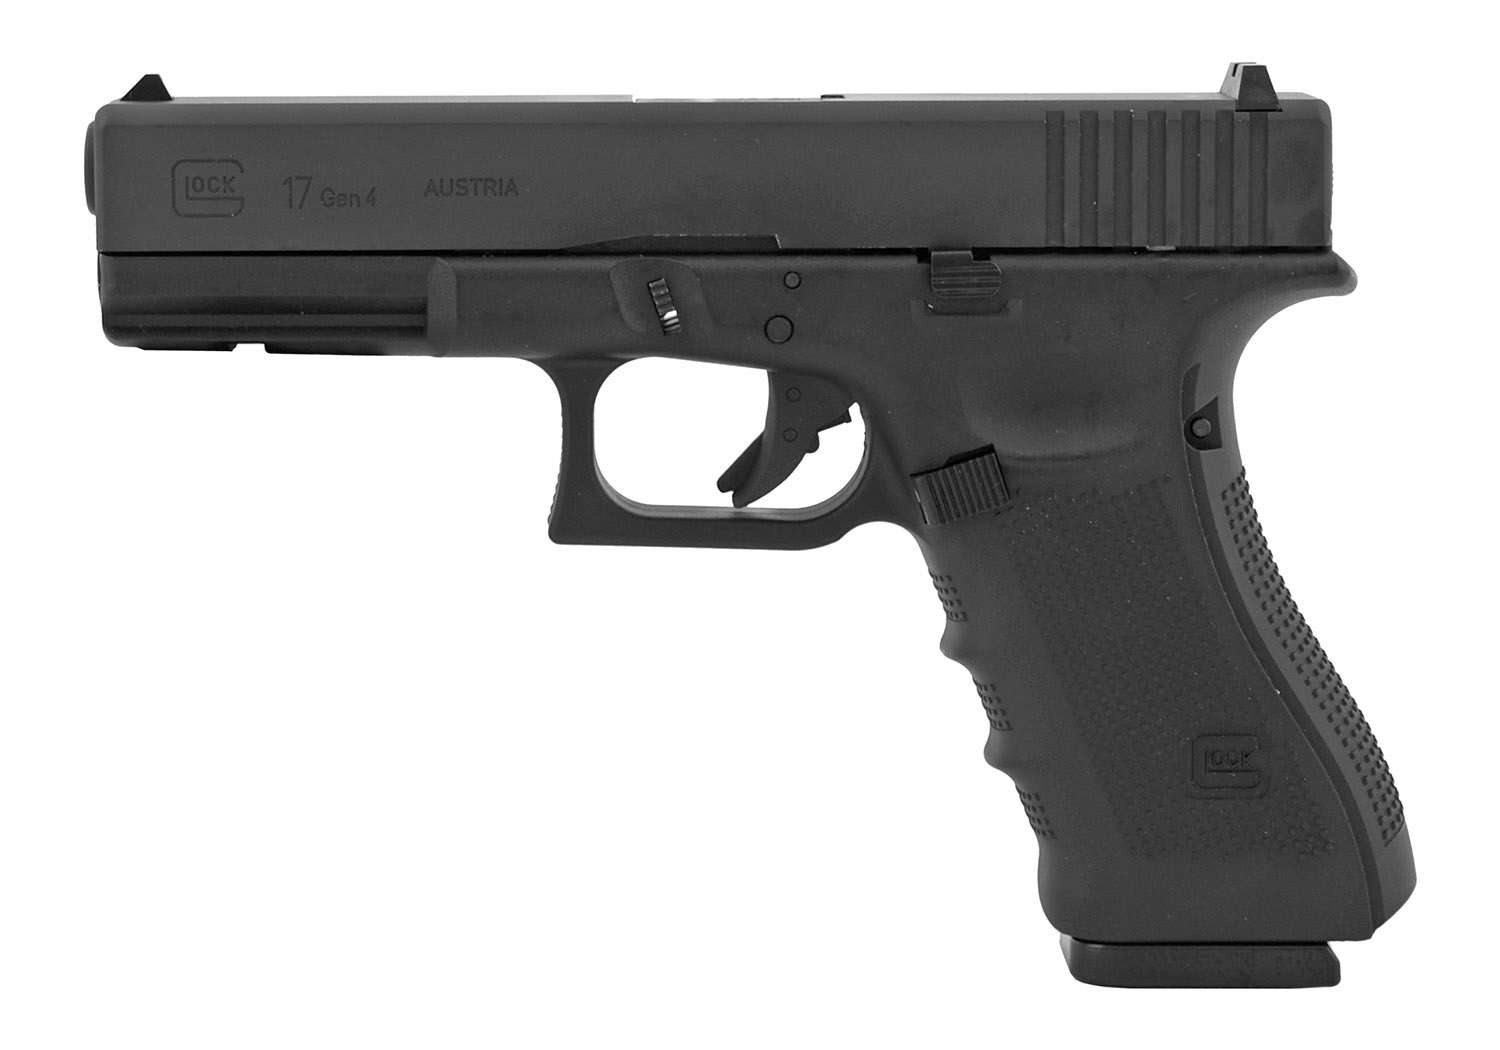 Glock 17 GEN4 .177 Cal. Blowback CO2 BB Handgun - Refurbished